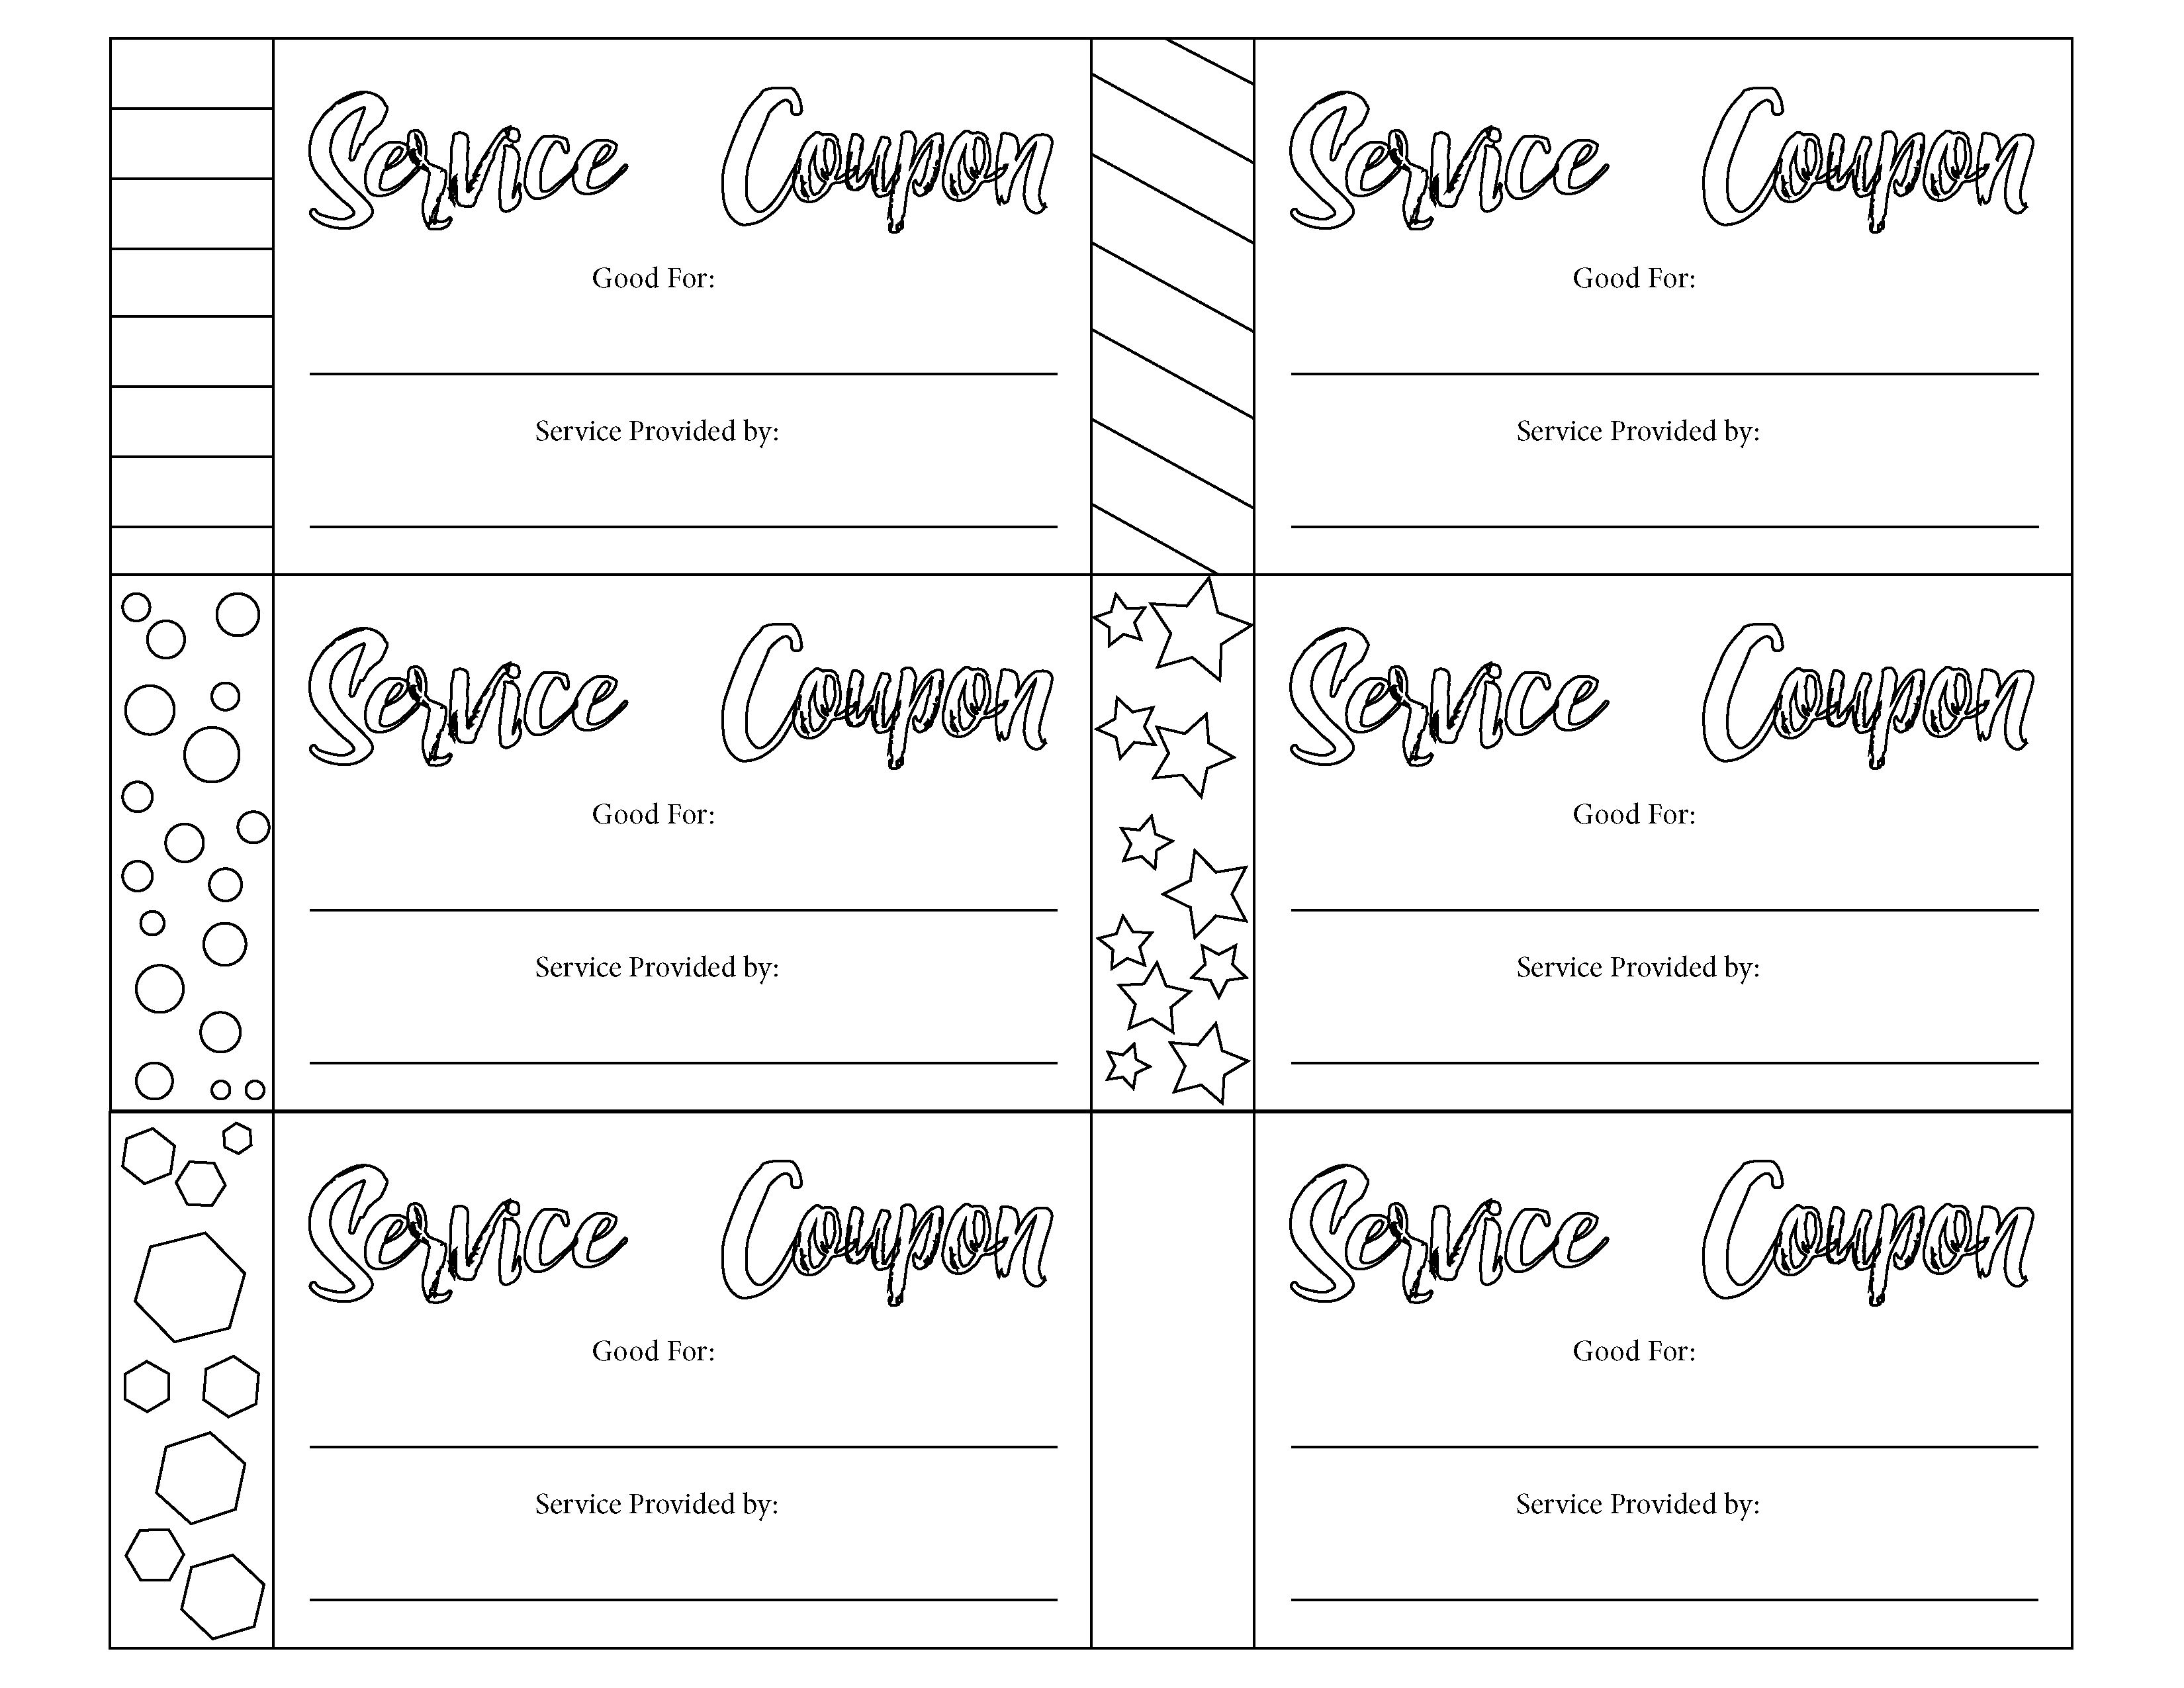 Service Coupons Free Printable Lou Lou Girls Free Printable Coupons Activity Day Girls Activity Days